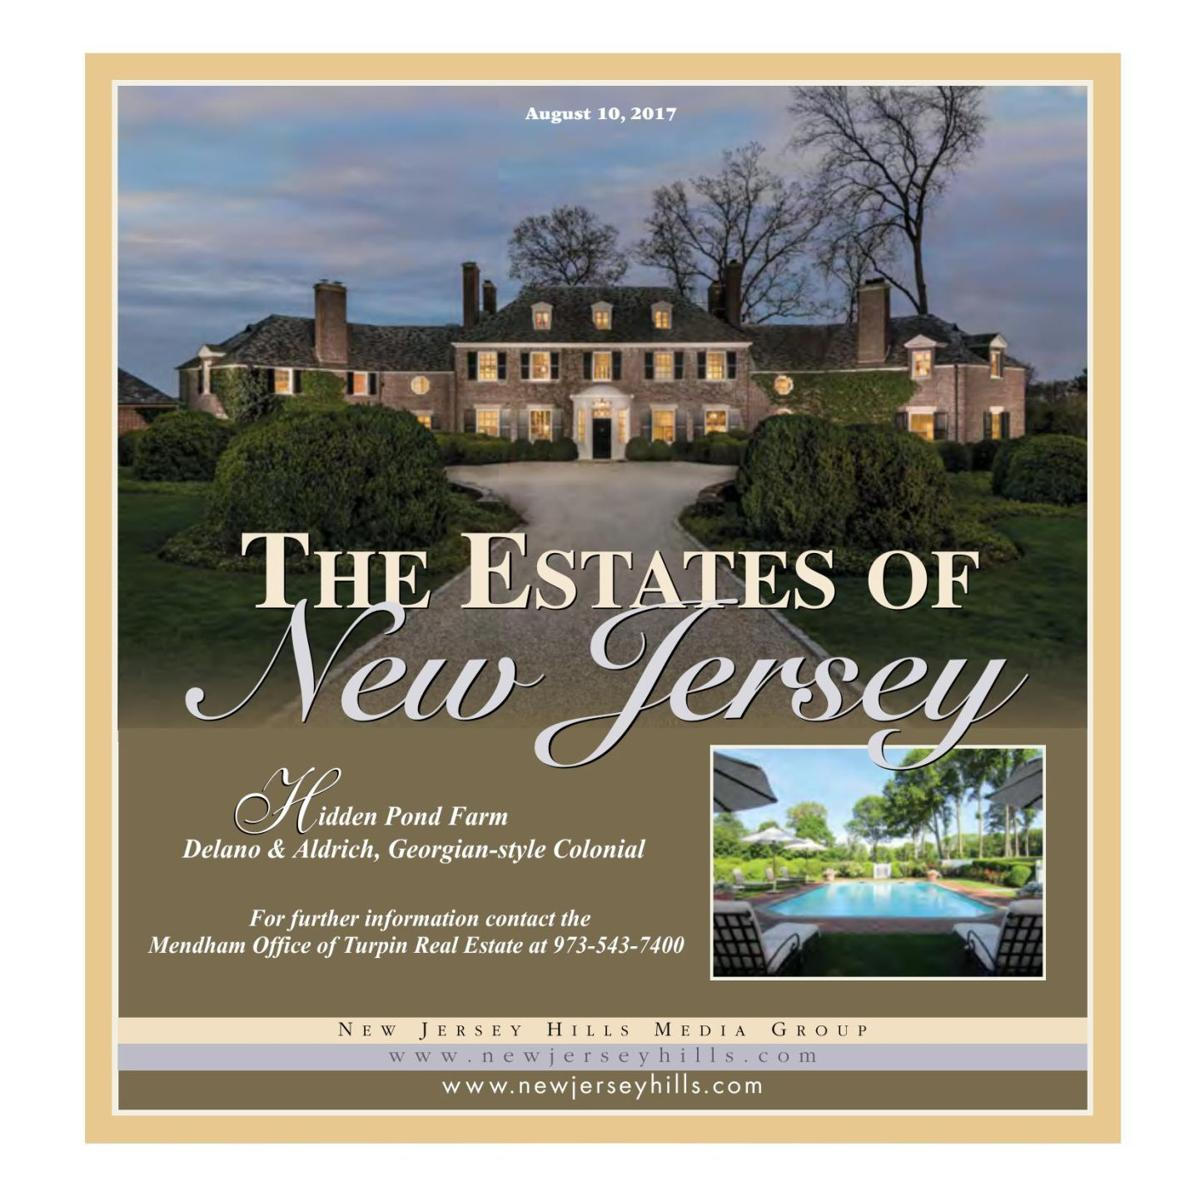 Estates of New Jersey - August 10, 2017